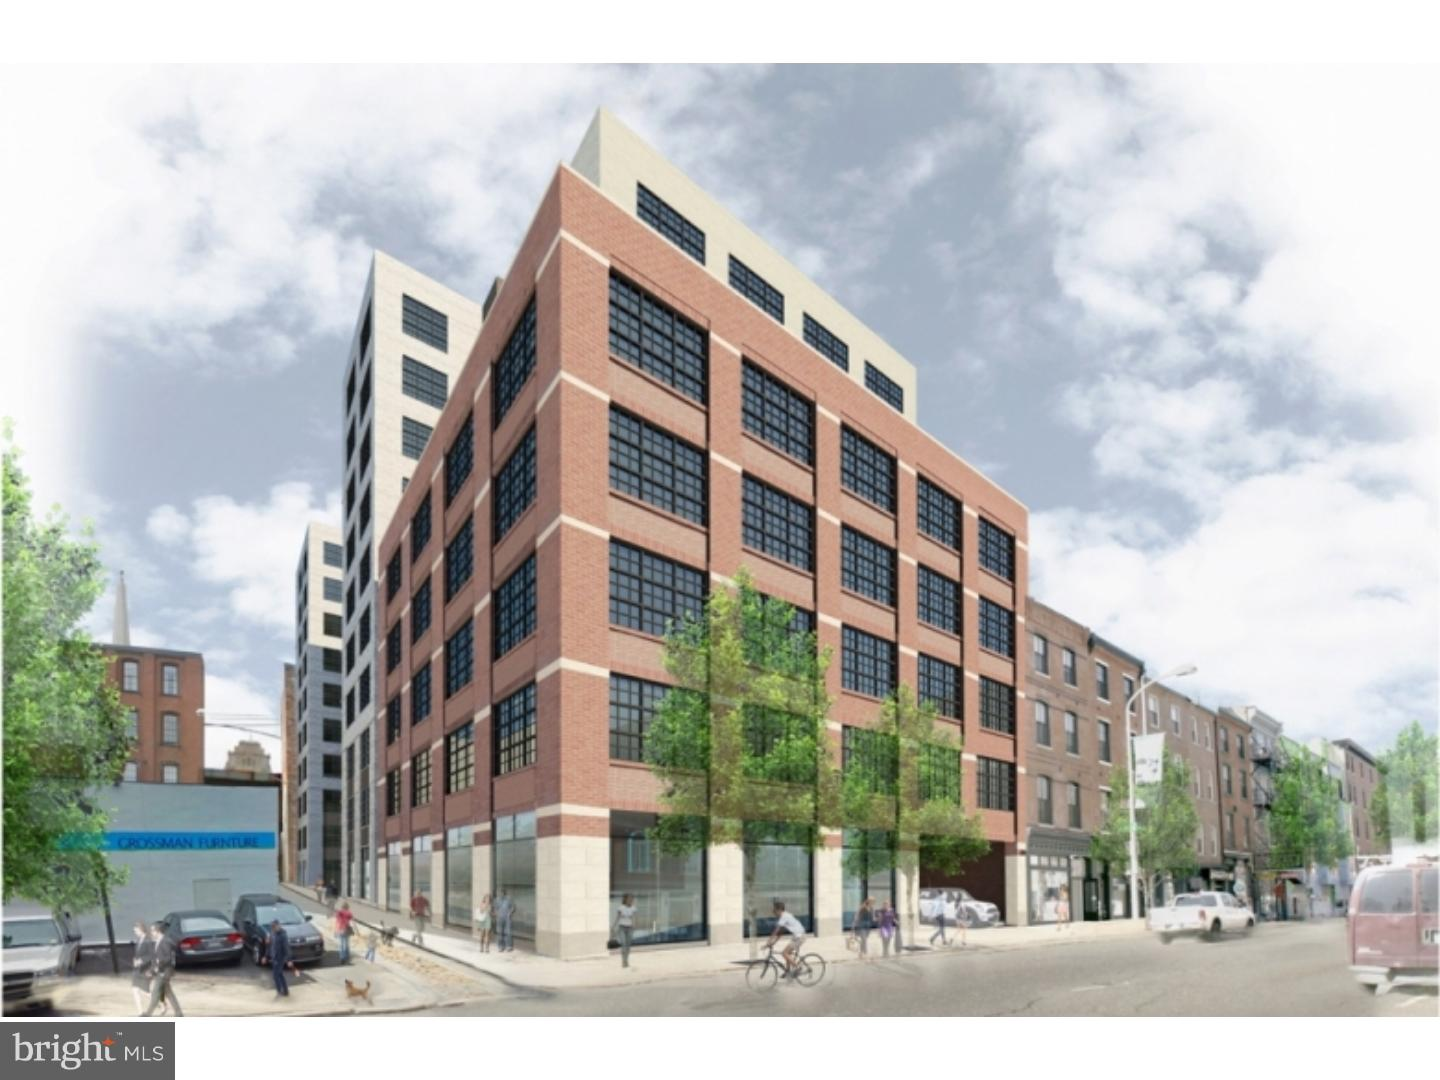 ONE MONTH FREE, on a 13 month lease, and WAIVED APPLICATION FEES for a limited time!218 Arch Street: OLD CITY'S NEWEST LUXURY residential high rise, is a must see! ! ! ! ! ! ! ! ! ! You can be the FIRST ONE, to occupy this  fantastic South facing, 1 bedroom apartment, with  a PRIVATE TERRACE! Gorgeous hardwood floors, ALL OPEN KITCHEN with granite countertops, stainless steel appliances, and breakfast bar. Your bedroom is very SPACIOUS and GRACIOUS, boasting, great closet space, and very large tile and marble bath. 218 Arch is filled with AMENITIES: ROOF top lounge,with FANTASTIC VIEWS of the BEN FRANKLIN bridge and Center City, PRIVATE resident courtyard, GYM,  PELATON room, LOUNGE,with flat screen TVs, billiards, business center, and GARAGE parking for additional fee! ! ! Luxury and Value in the heart of OLD CITY! ! ! ! ! ! ! ! ! ! ! ! ! Walking score 110! Photo's are of model unit.